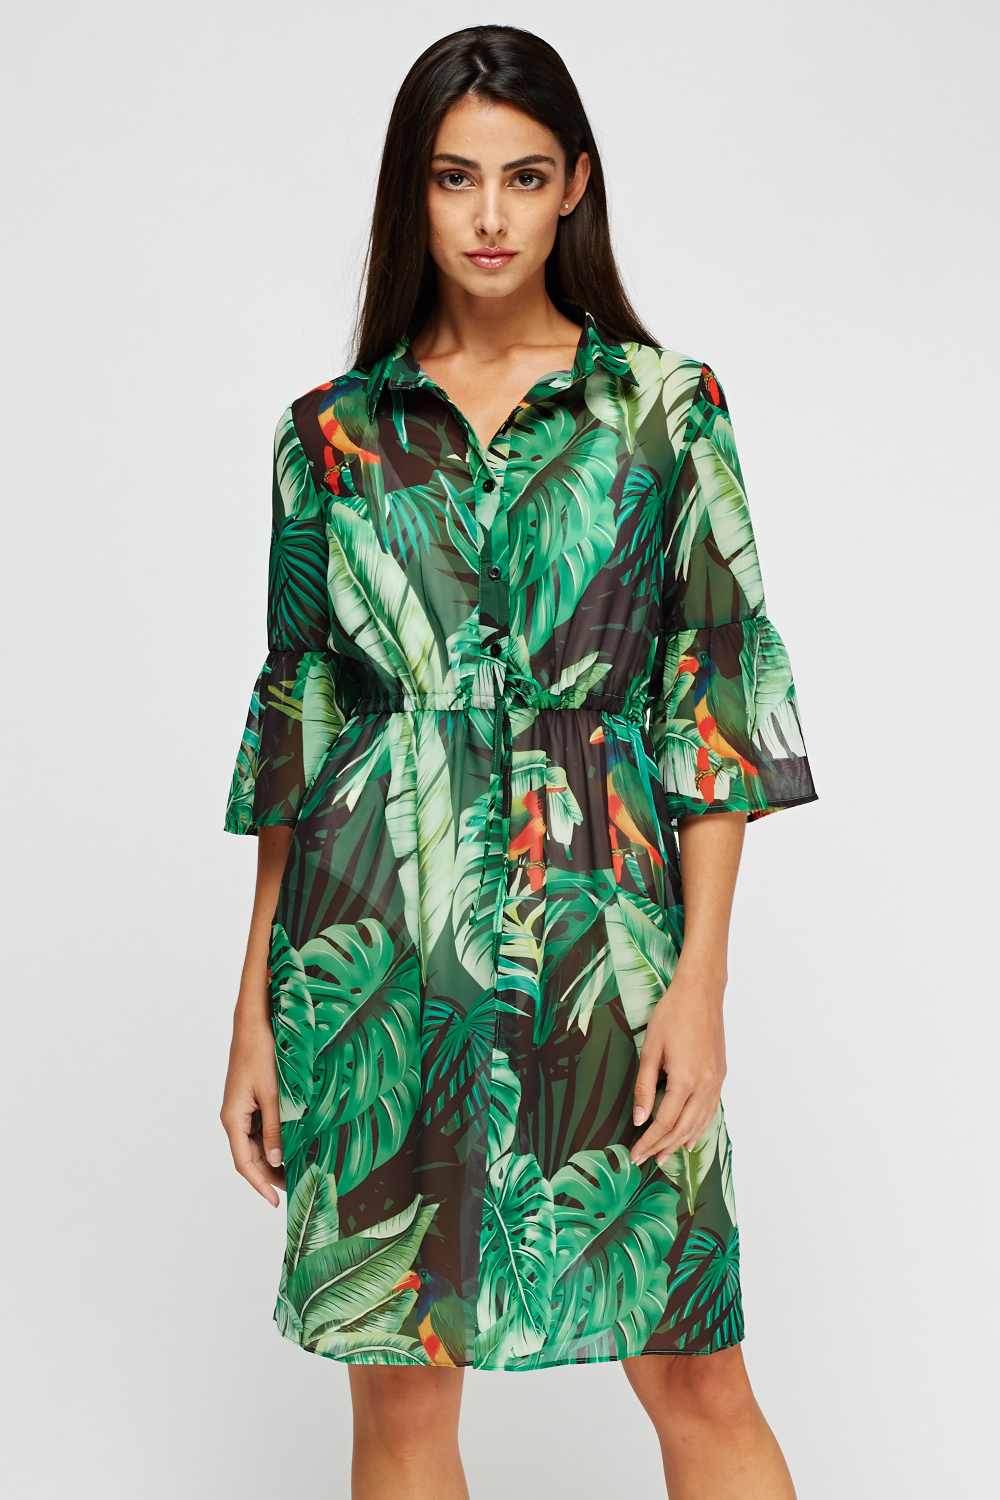 b22998038e Floral Printed Sheer Cover Up - Just £5